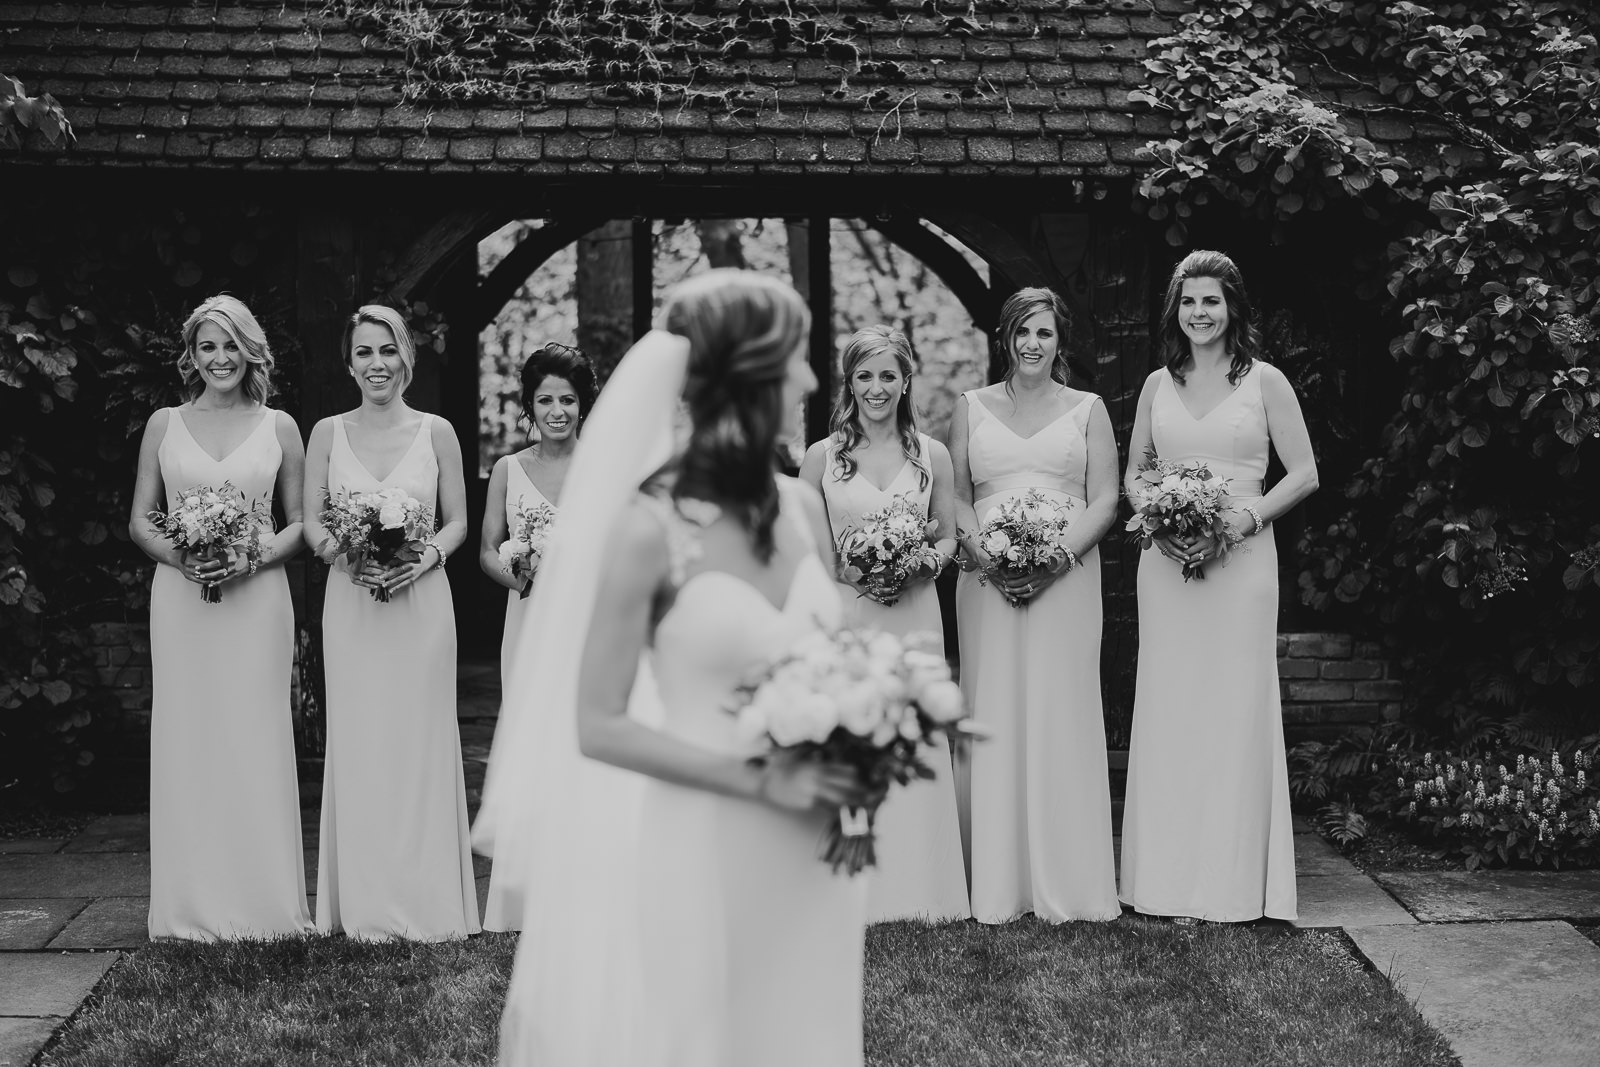 32 bride and bridesmaids in cleveland - Club of Hillbrook Wedding // Jenna + Ben